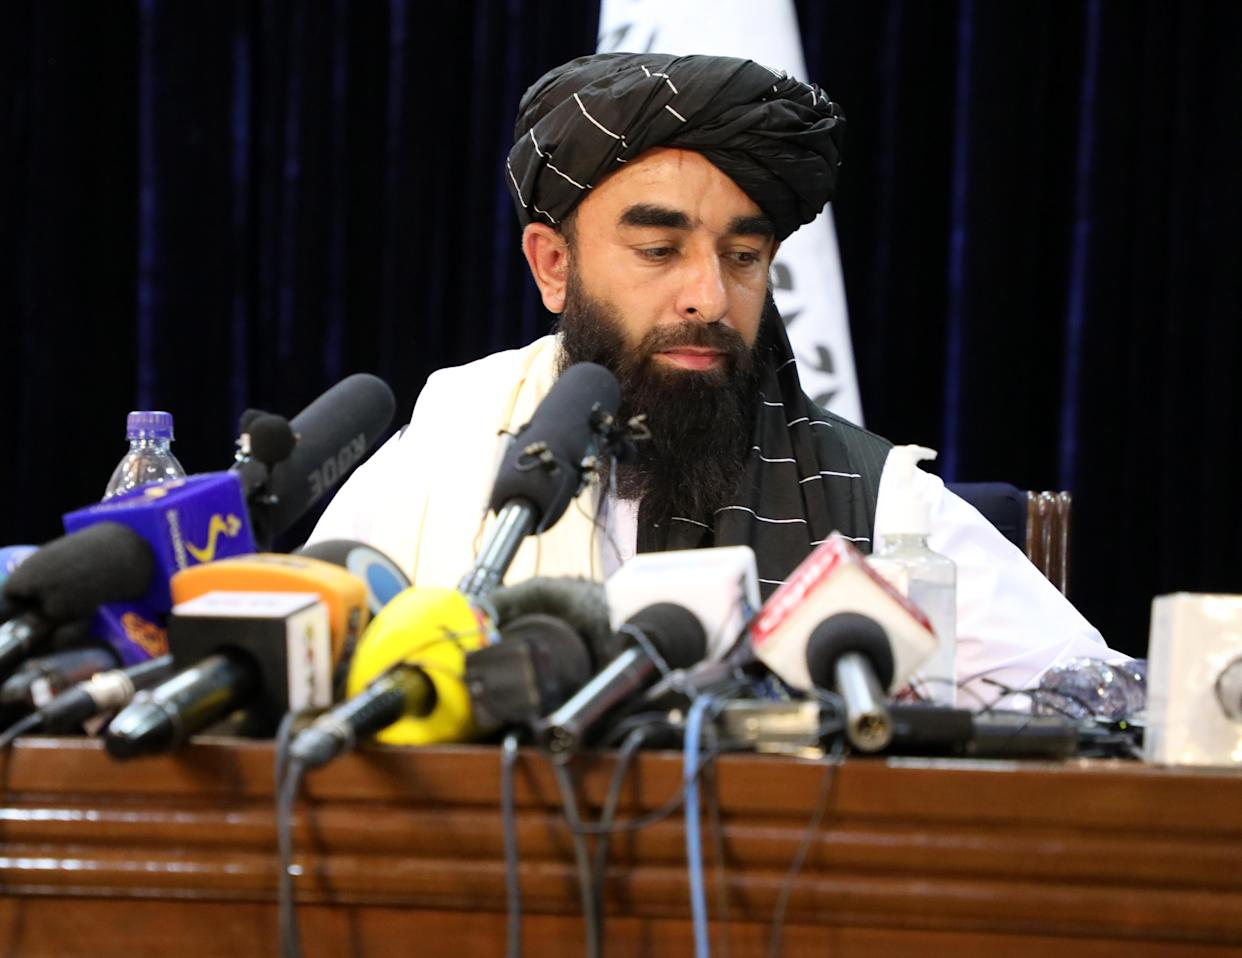 KABUL, AFGHANISTAN - AUGUST 17: Taliban spokesperson Zabihullah Mujahid answers press members questions as he holds a press conference in Kabul, Afghanistan on August 17, 2021. (Photo by Sayed Khodaiberdi Sadat/Anadolu Agency via Getty Images)